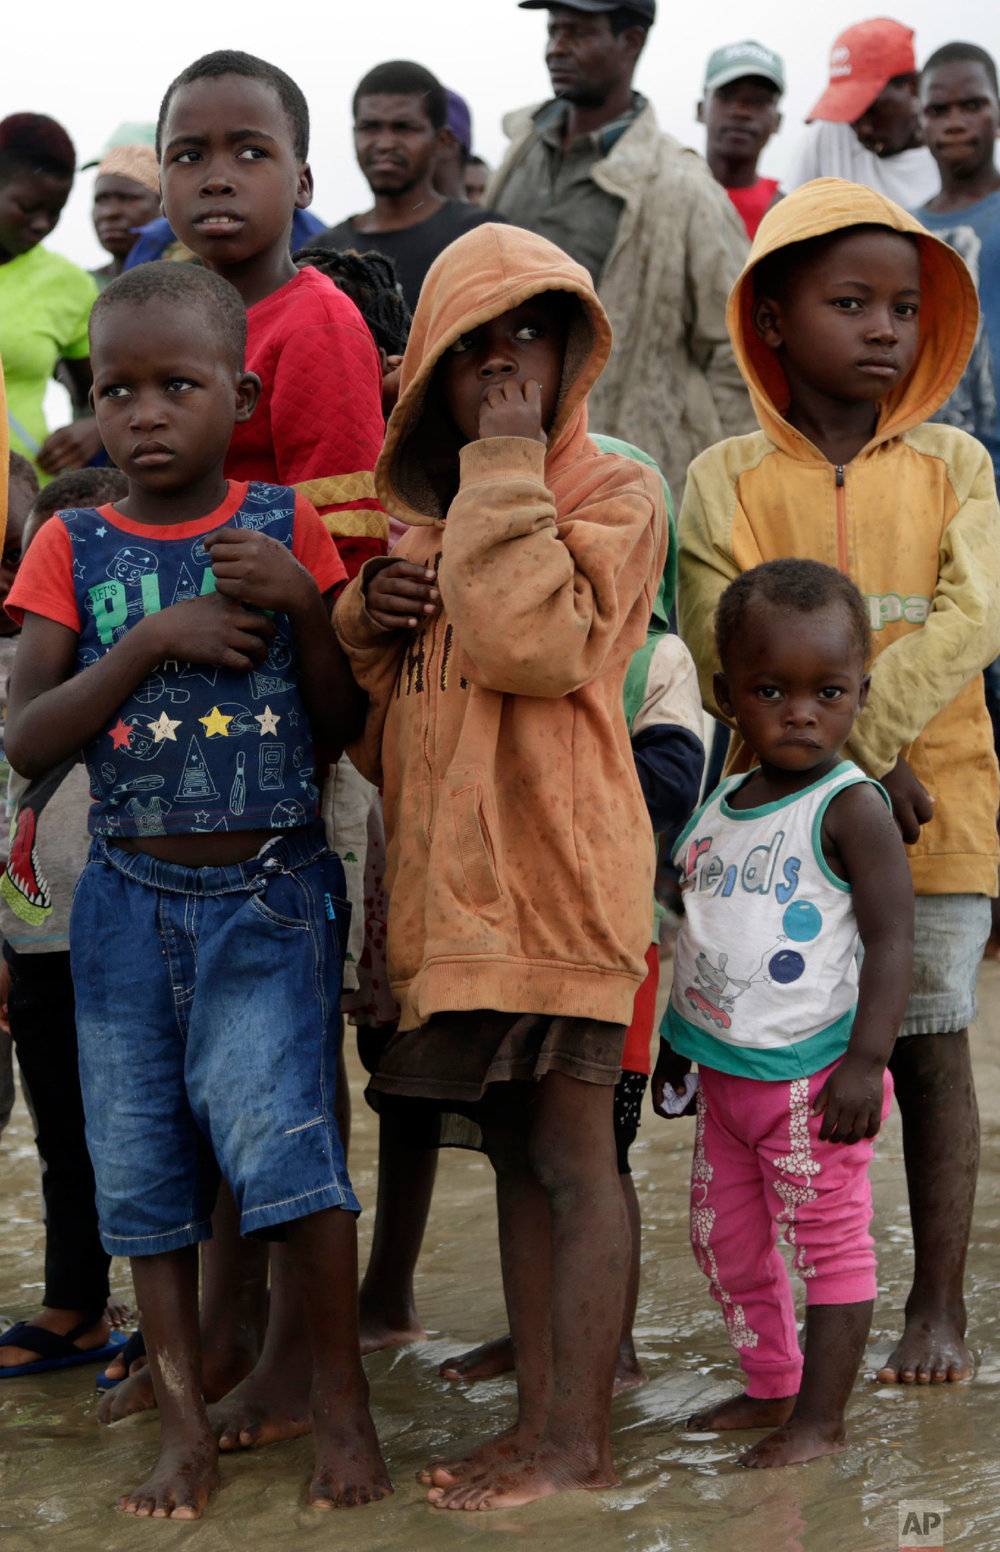 Children wait as their parents disembark from a boat after being rescued from a flooded area of Buzi district, 200 kilometers (120 miles) outside Beira, Mozambique, on Saturday, March 23, 2019. (AP Photo/Themba Hadebe)